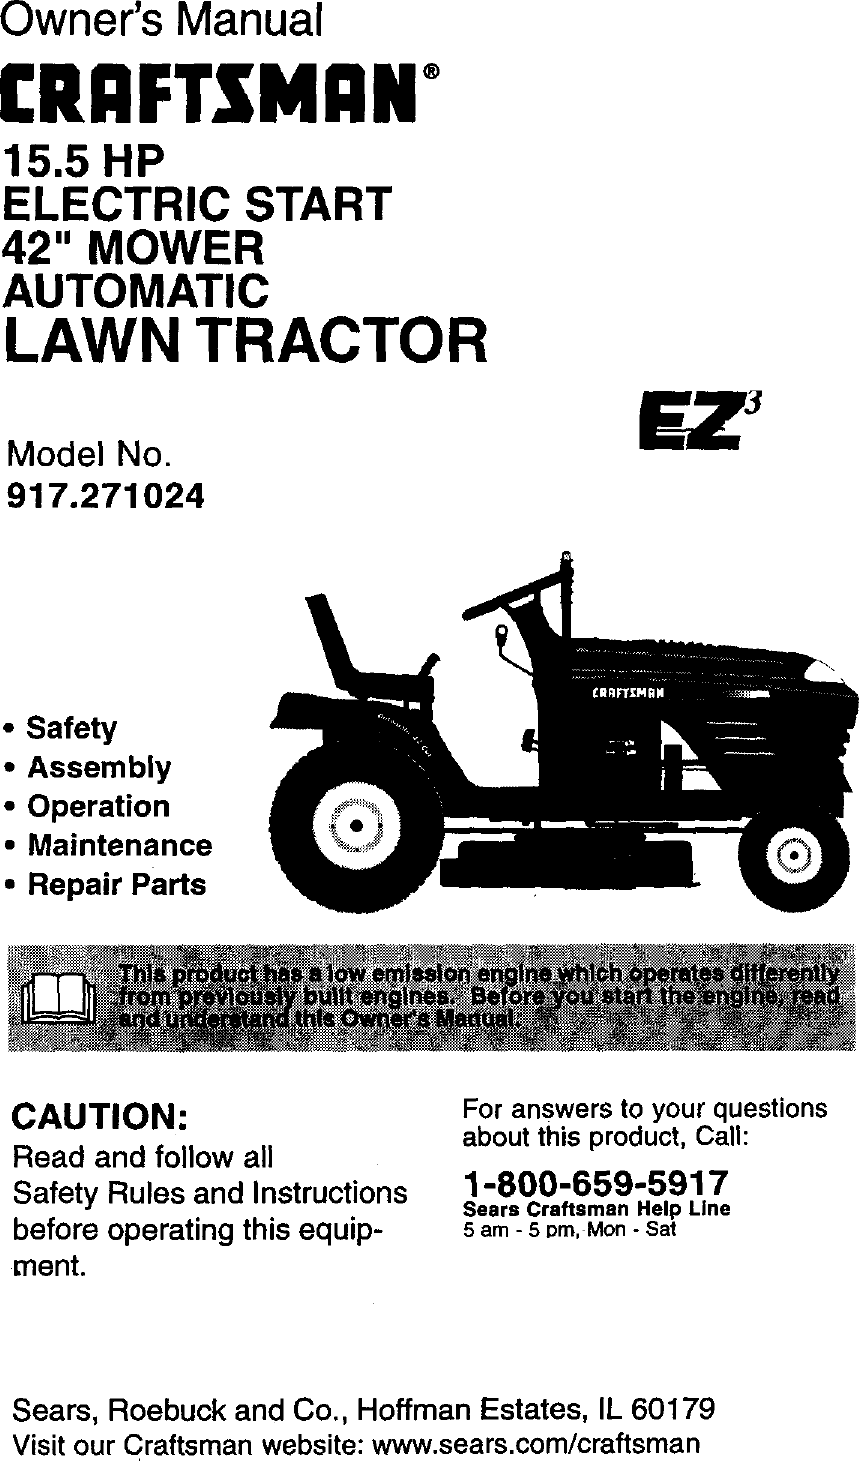 Craftsman 917271024 User Manual LAWN TRACTOR Manuals And